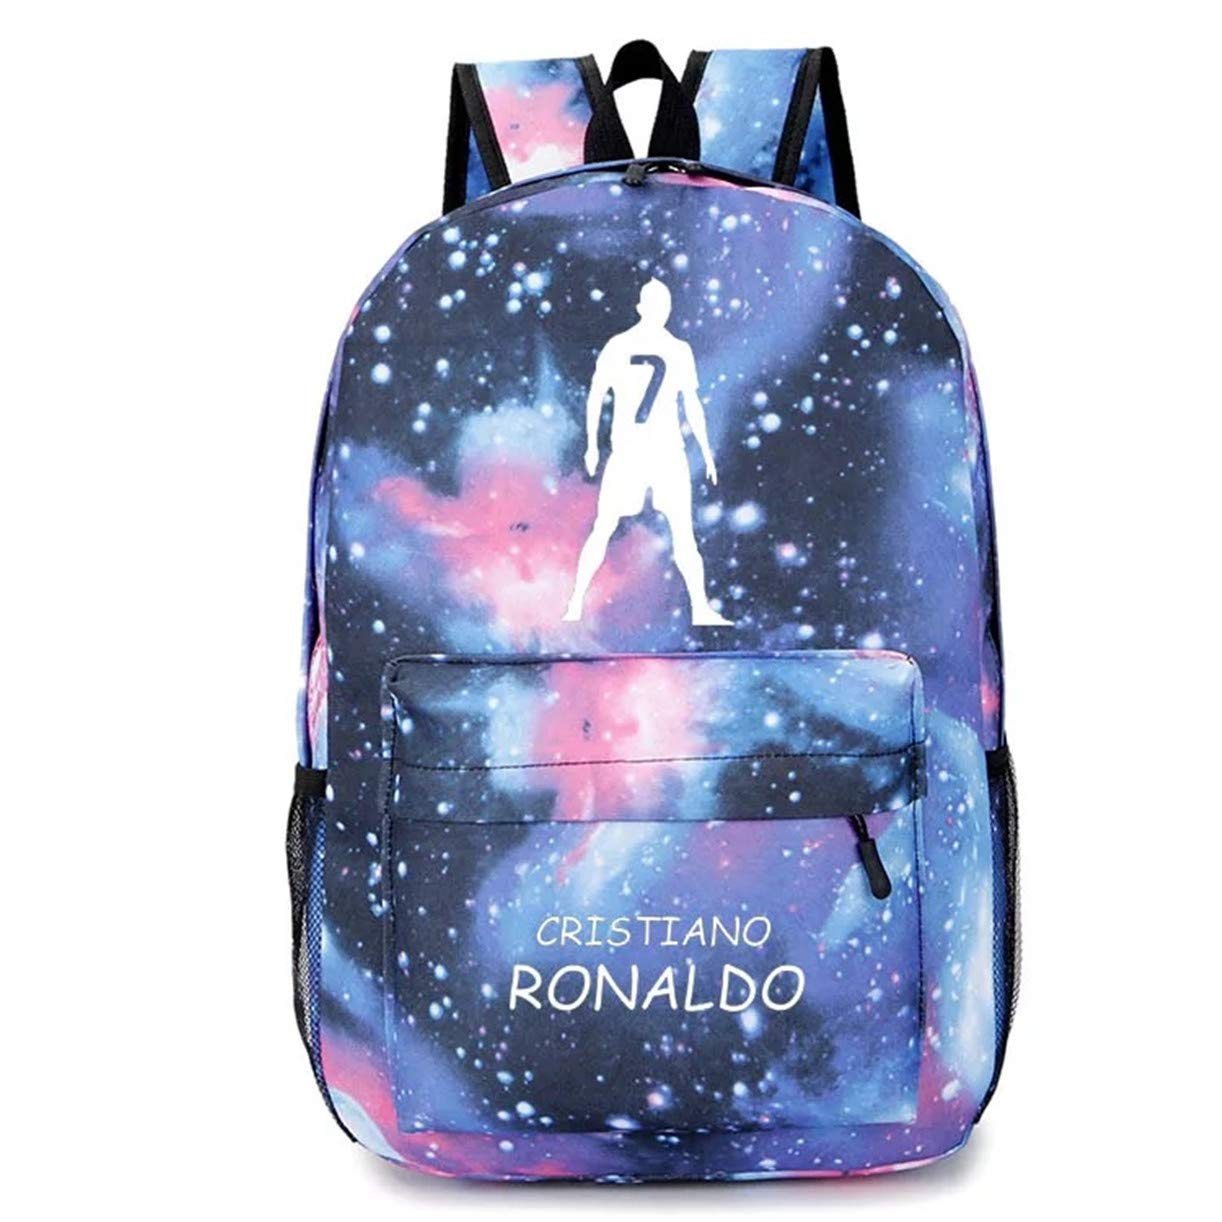 Galaxy blueee One Size Col92 Cristiano Ronaldo School BackpackSports Fan BackpackBackpack for Outdoor,Travel